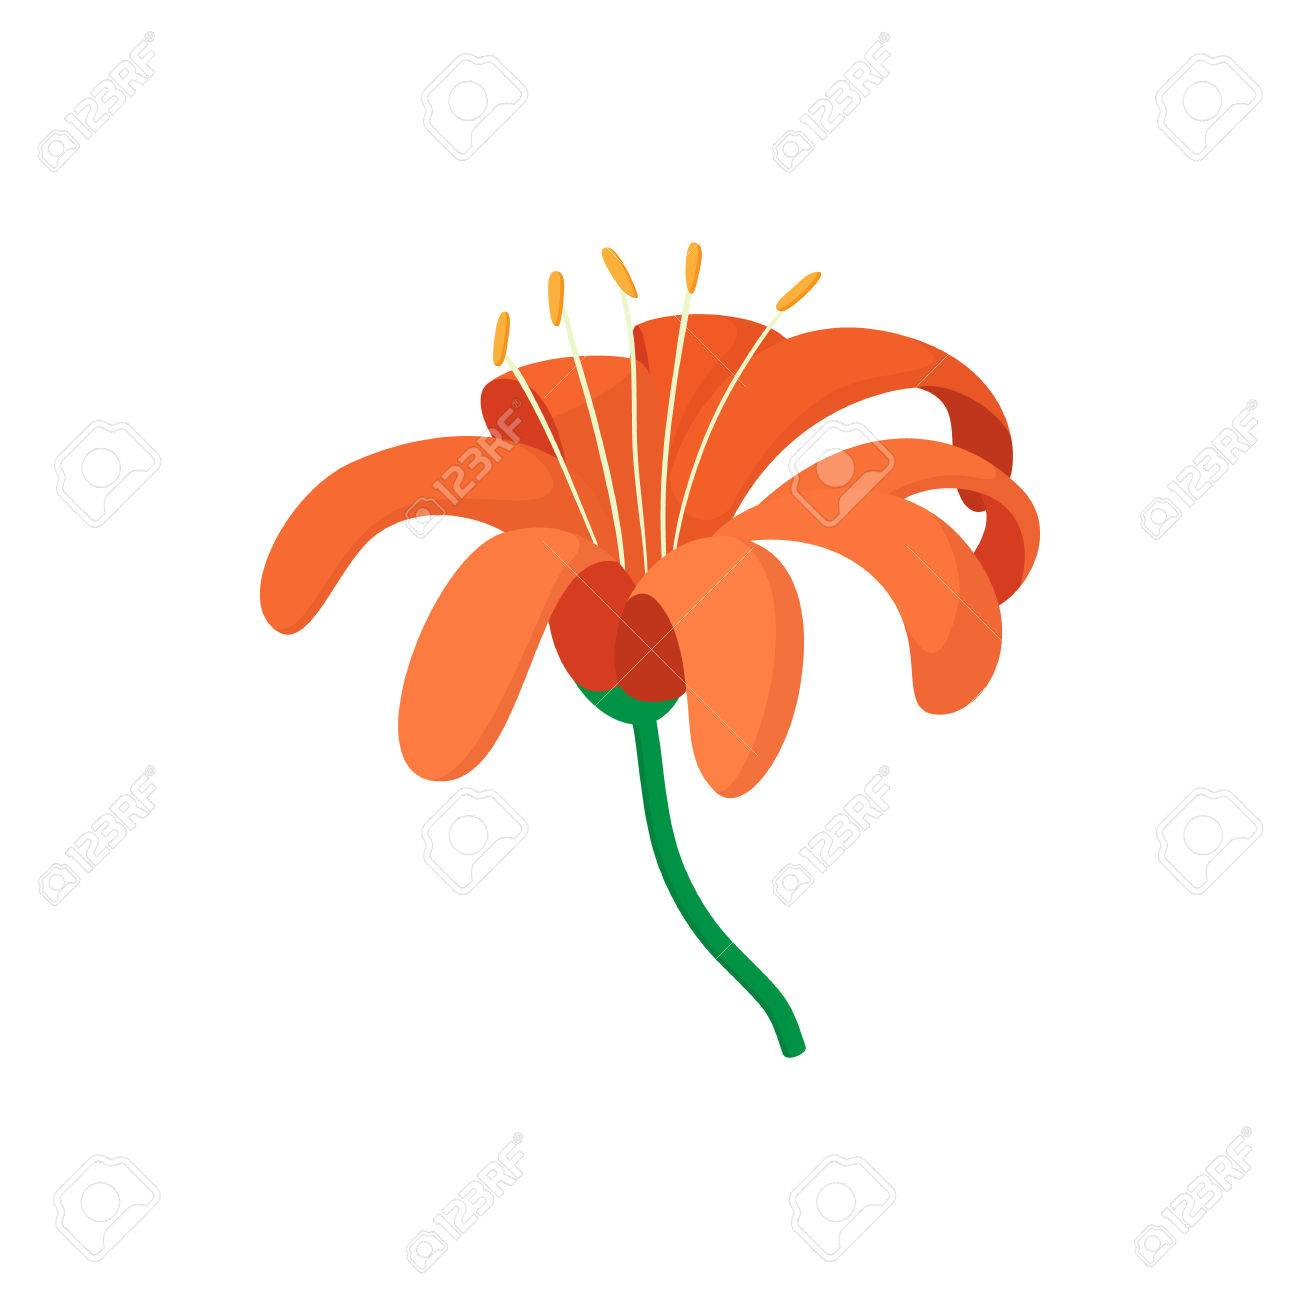 Orange lily icon in cartoon style on a white background royalty free orange lily icon in cartoon style on a white background stock vector 54597814 izmirmasajfo